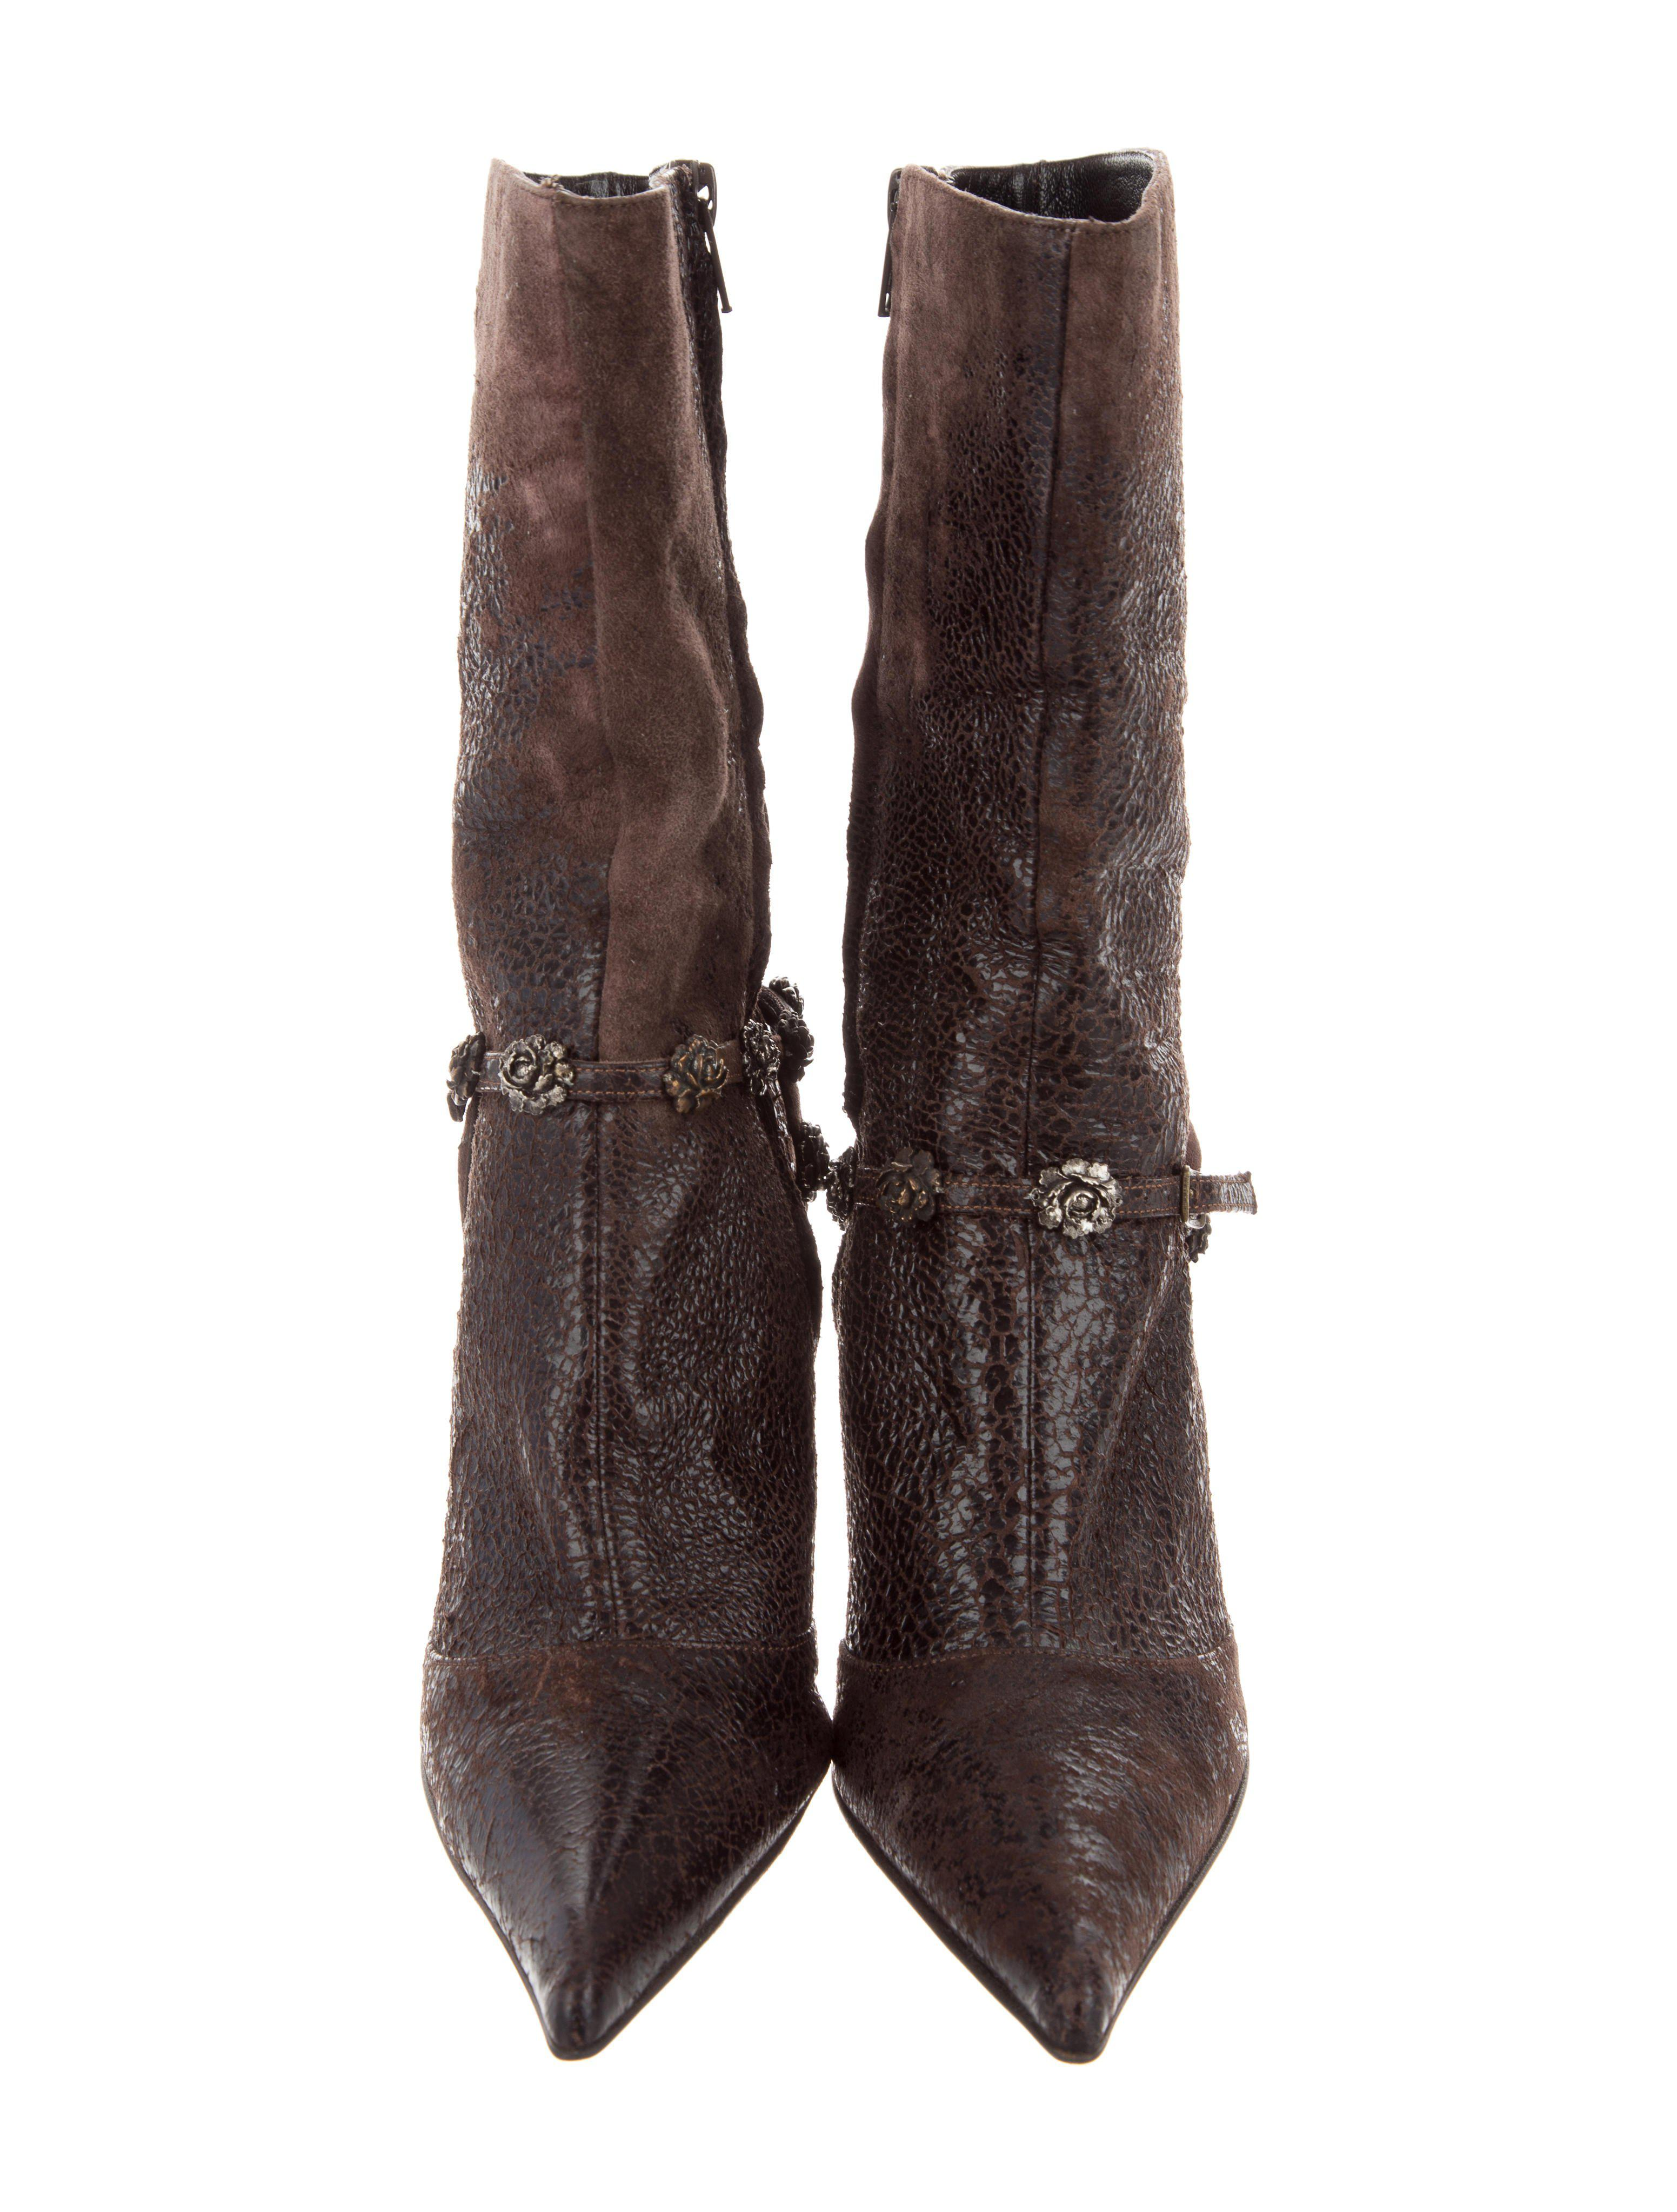 store sale online Roberto Cavalli Suede Floral-Embellished Ankle Boots buy cheap good selling cheap discount free shipping 100% authentic gbbHF